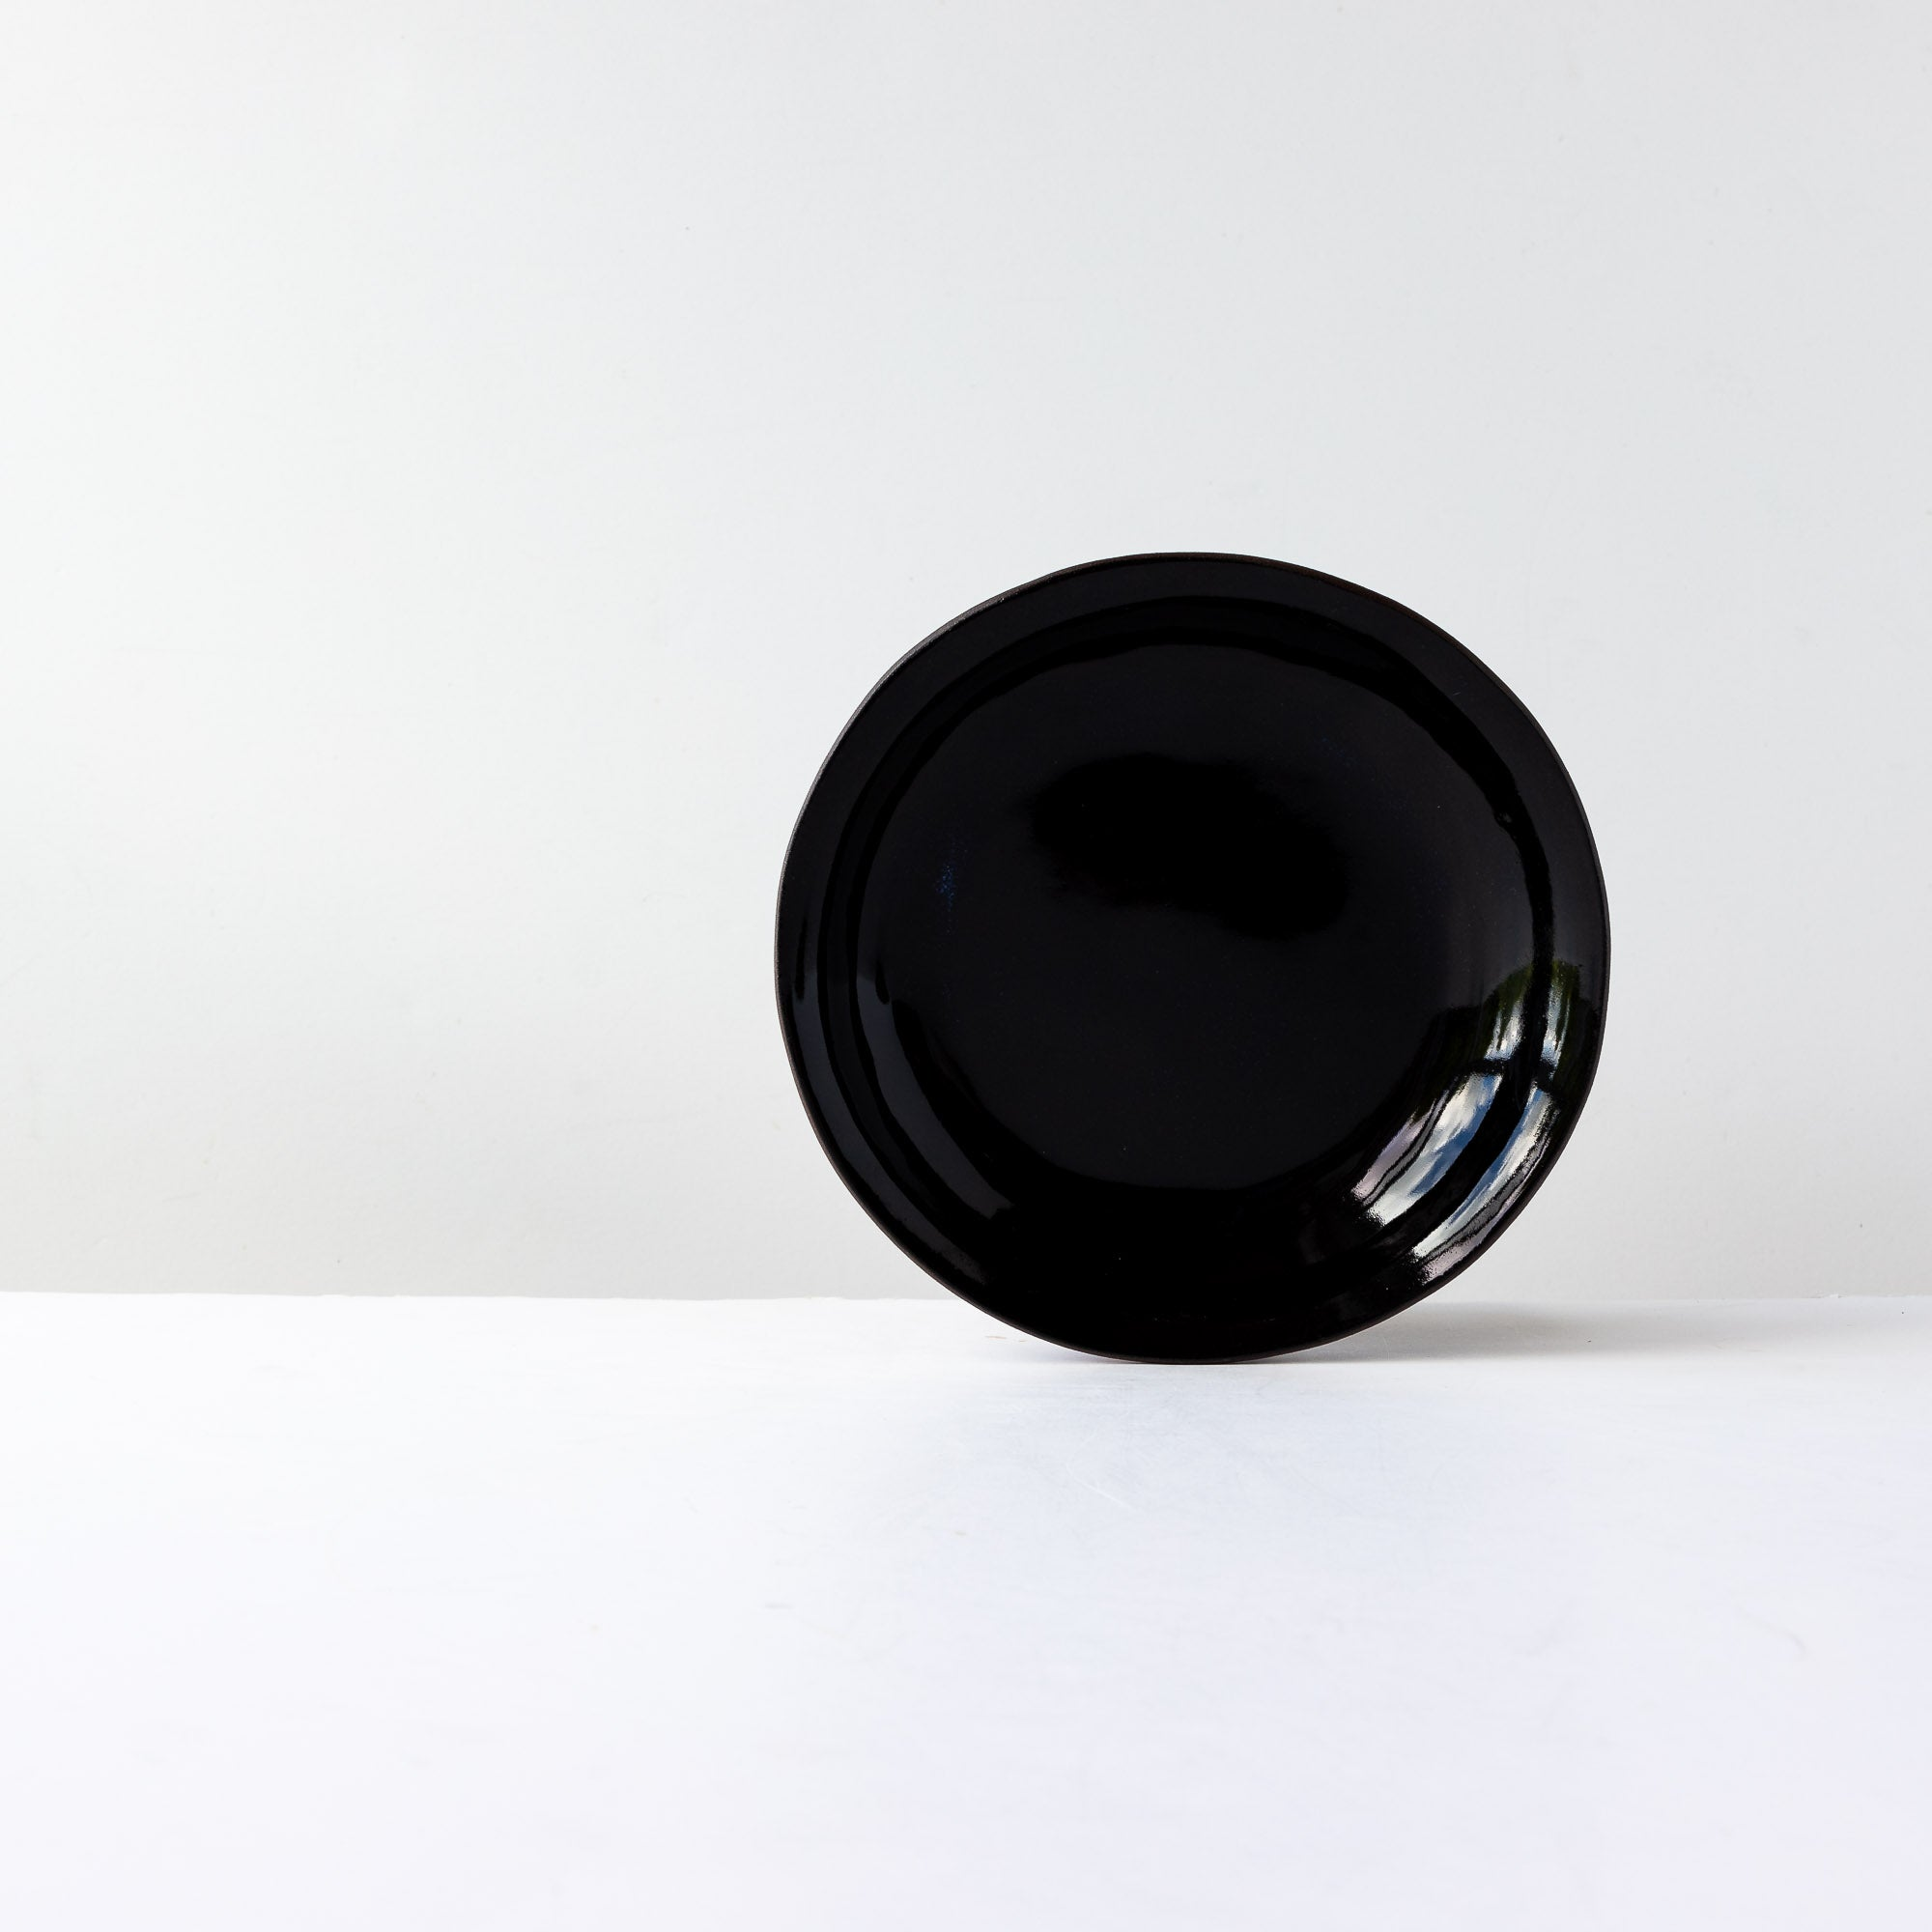 Three Handmade Small Bowls in Black Lacquered Stoneware - Sold by Chic & Basta